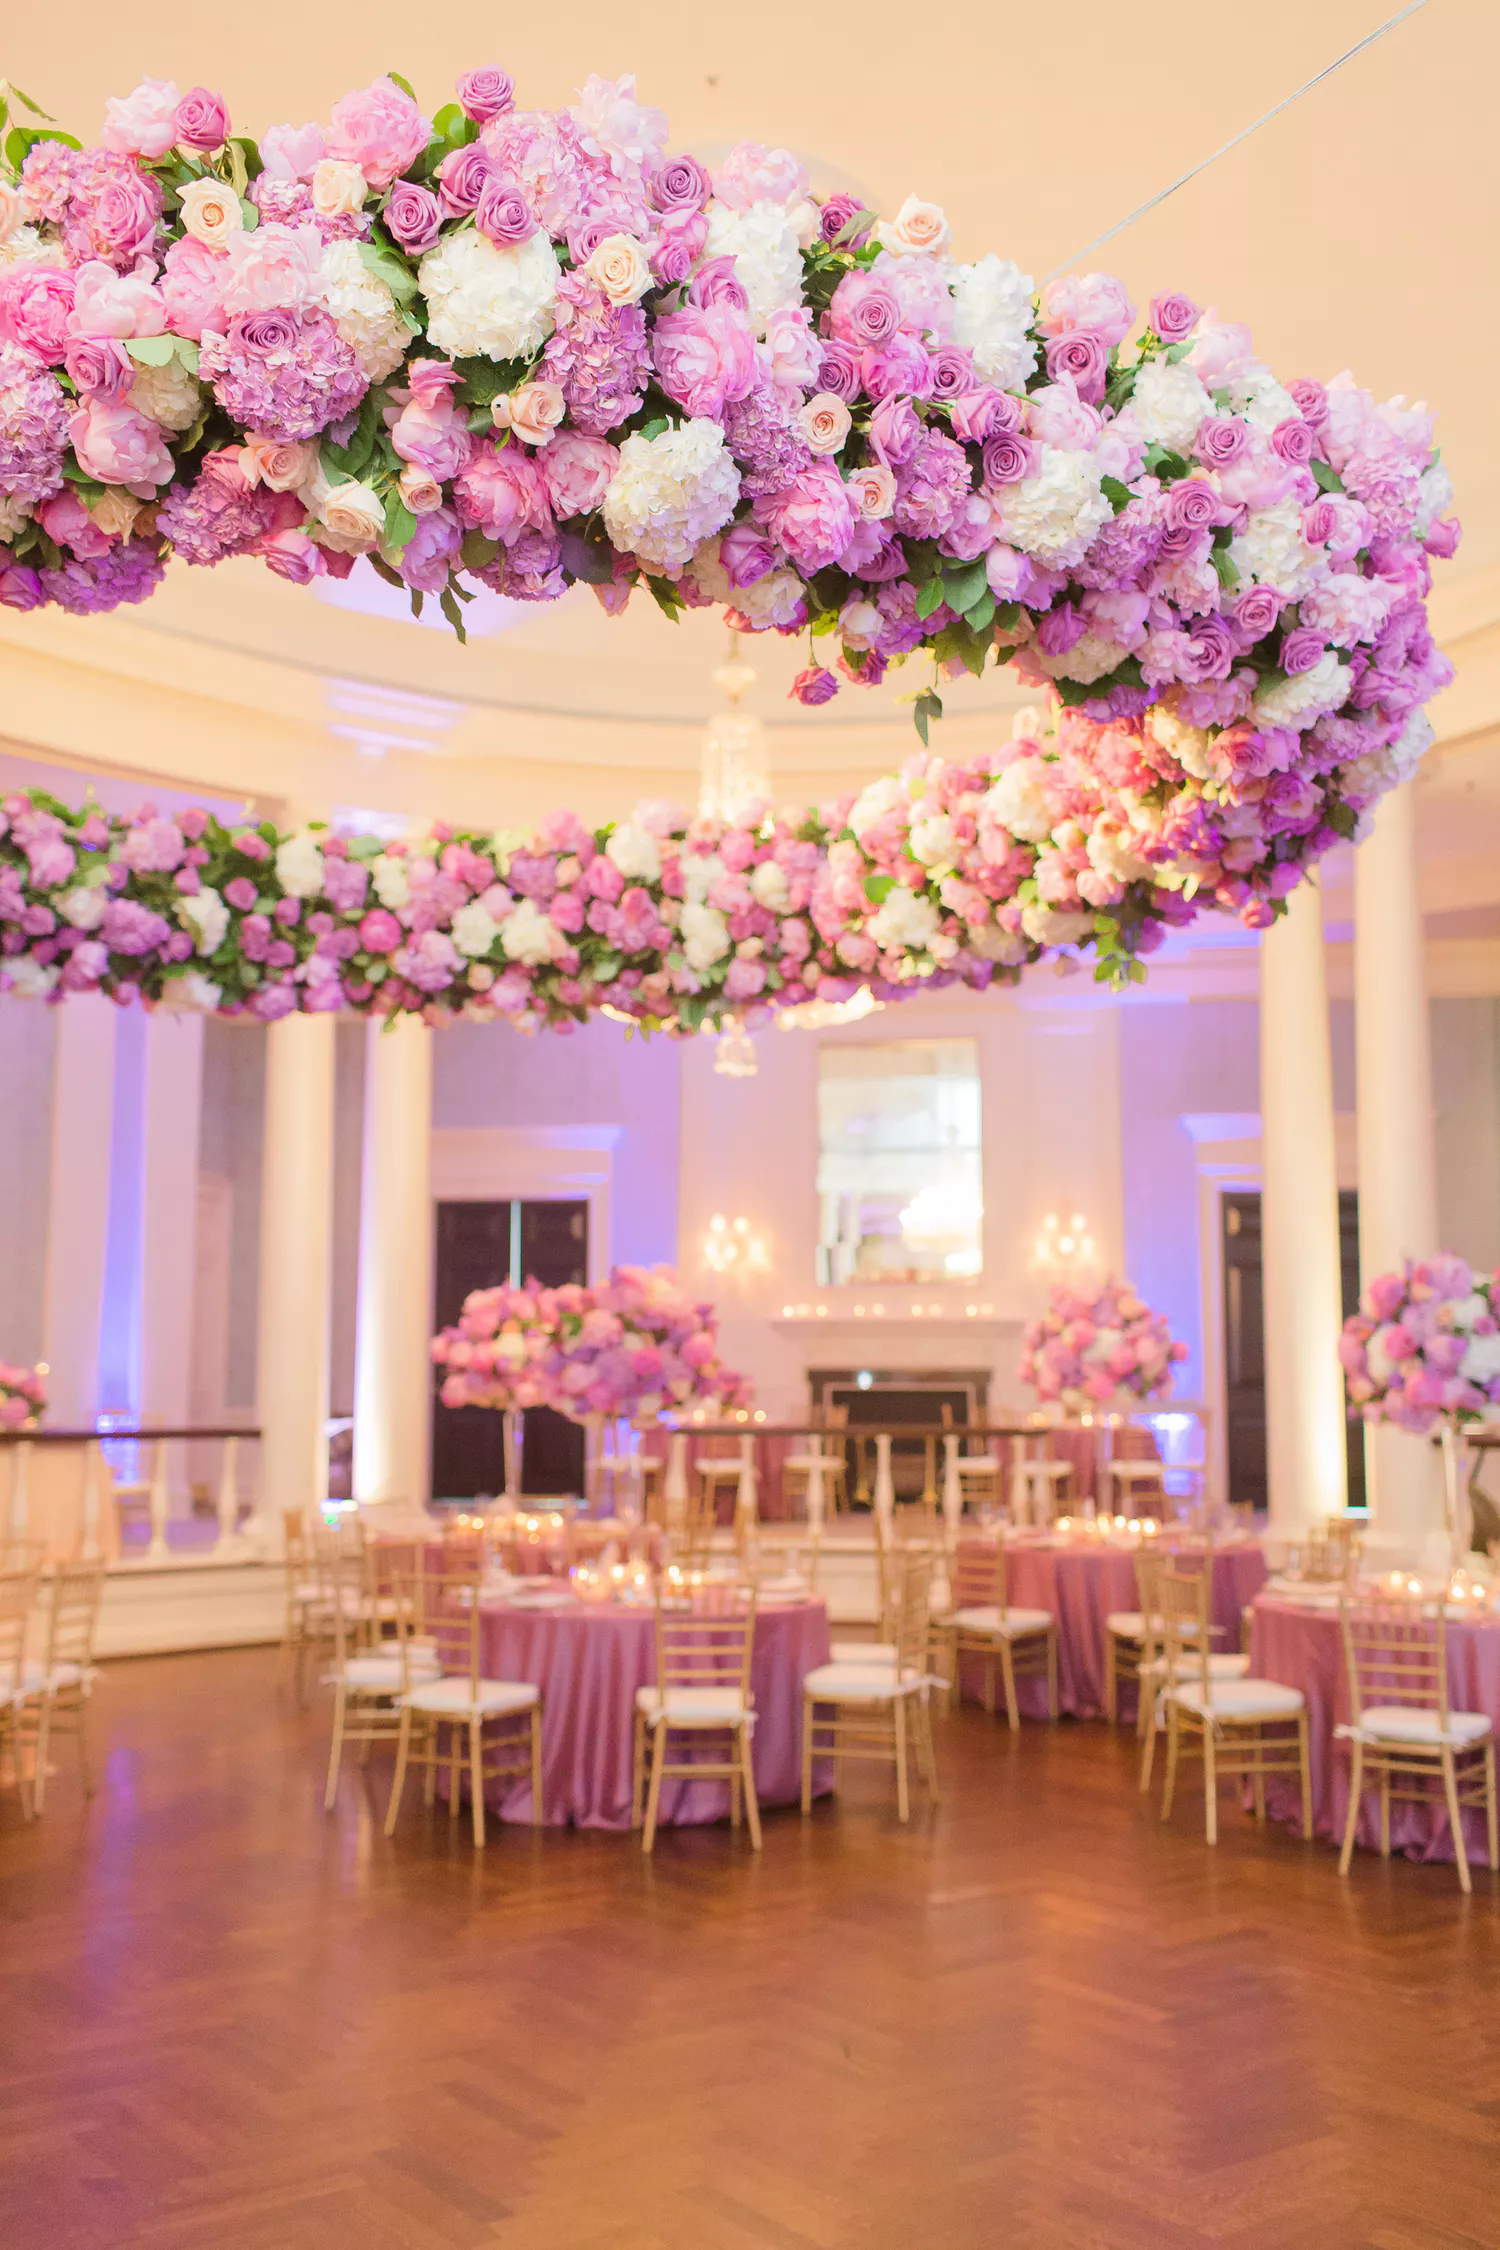 Whats Beautiful Romantic And Pink All Over This Unique Wedding